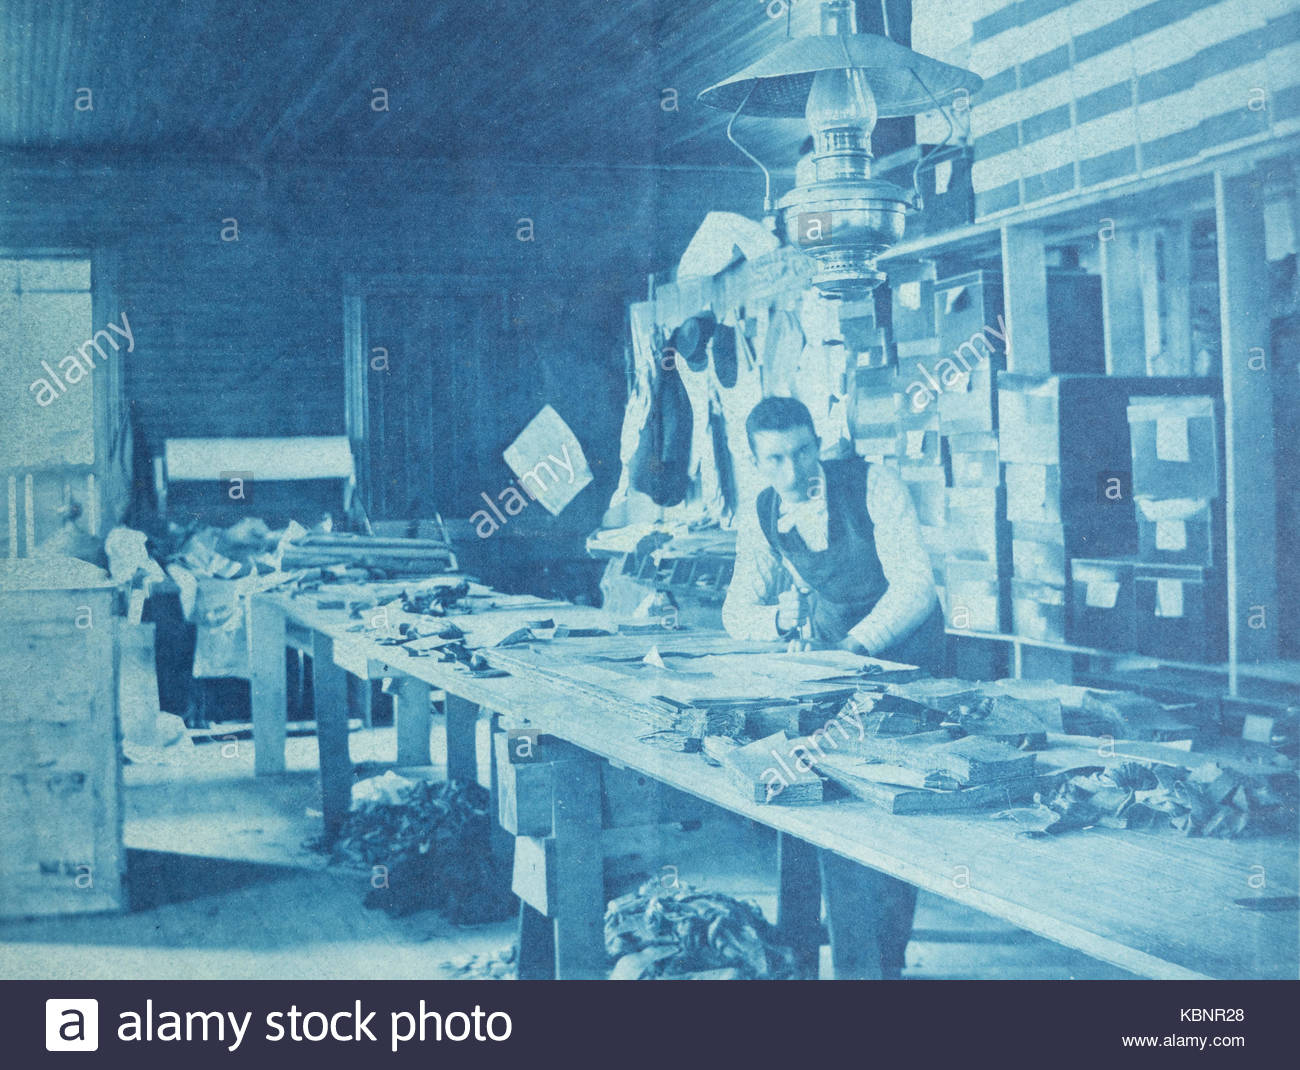 american-archive-cyanotype-photograph-of